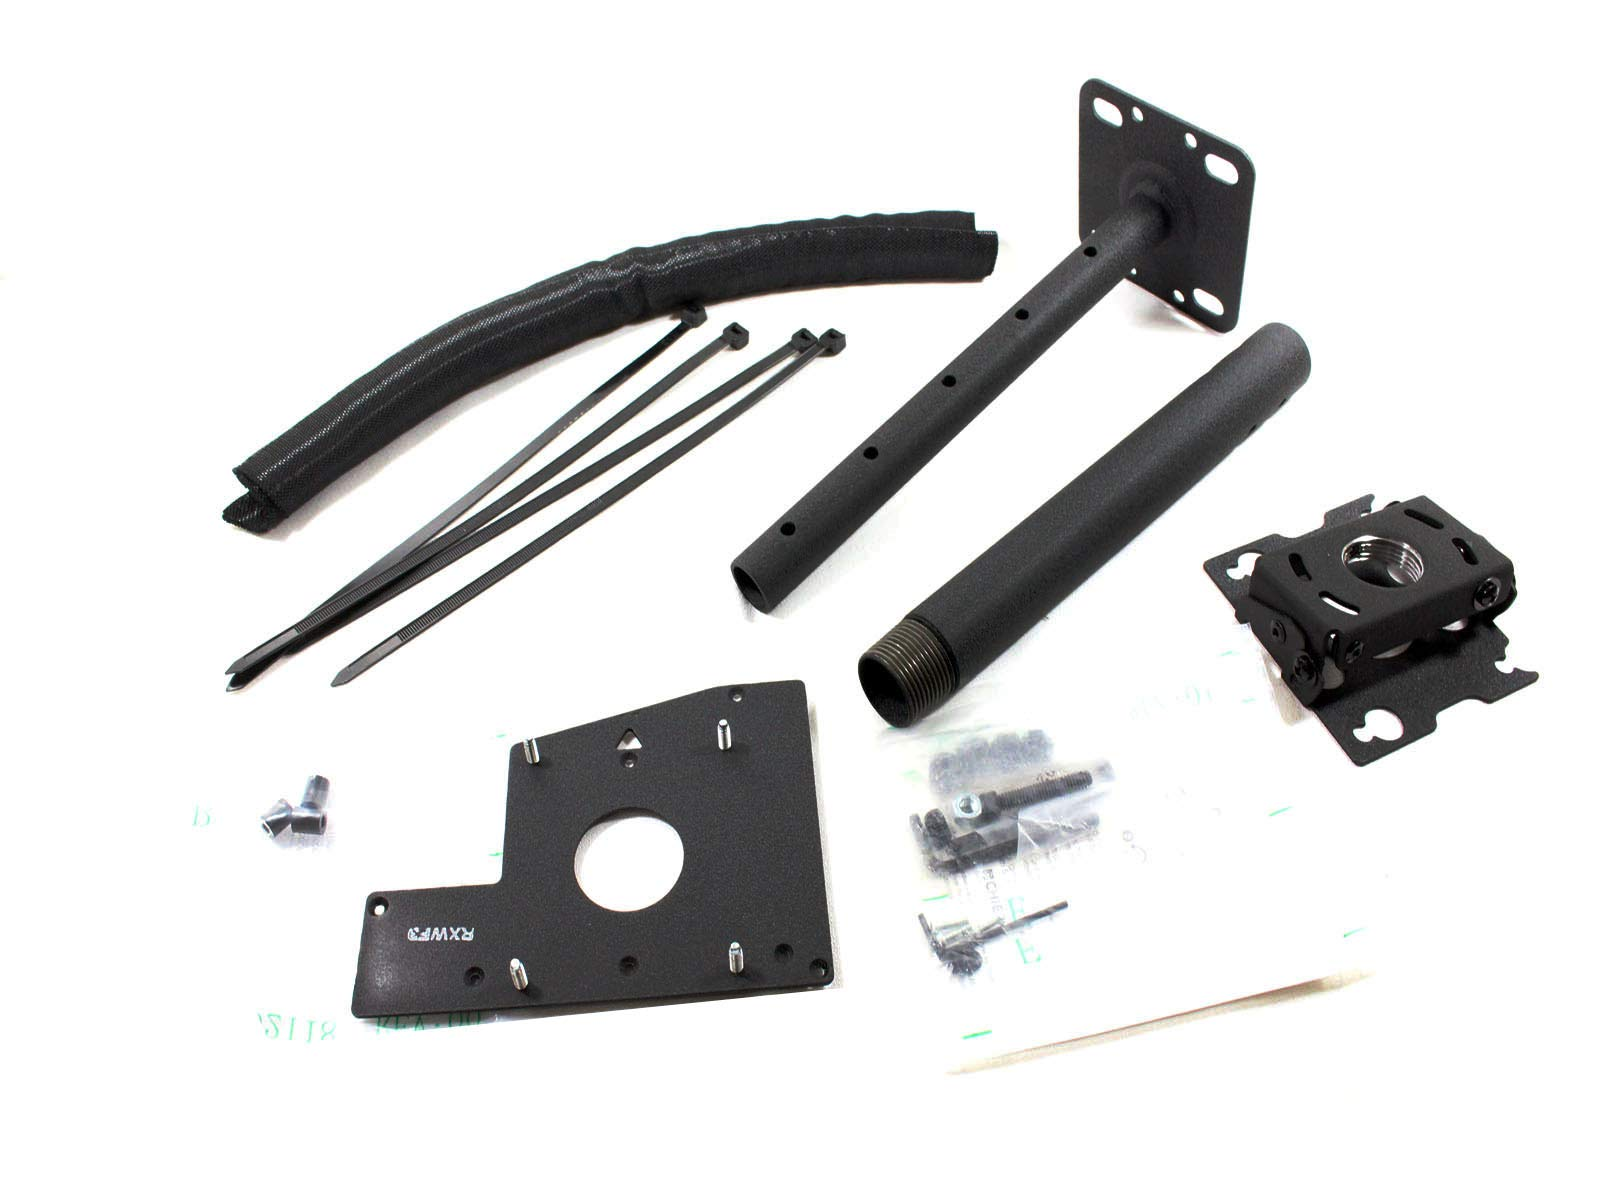 Dell/Chief Genuine C3504 Universal Projector Ceiling Mount Kit, Compatible With The Following Projectors: 1100MP, 1209S, 1409X, 1609WX, 1800MP, 2100MP, 2200MP, 3200MP, 3300MP, 4100MP, 7609WU by Dell/Chief